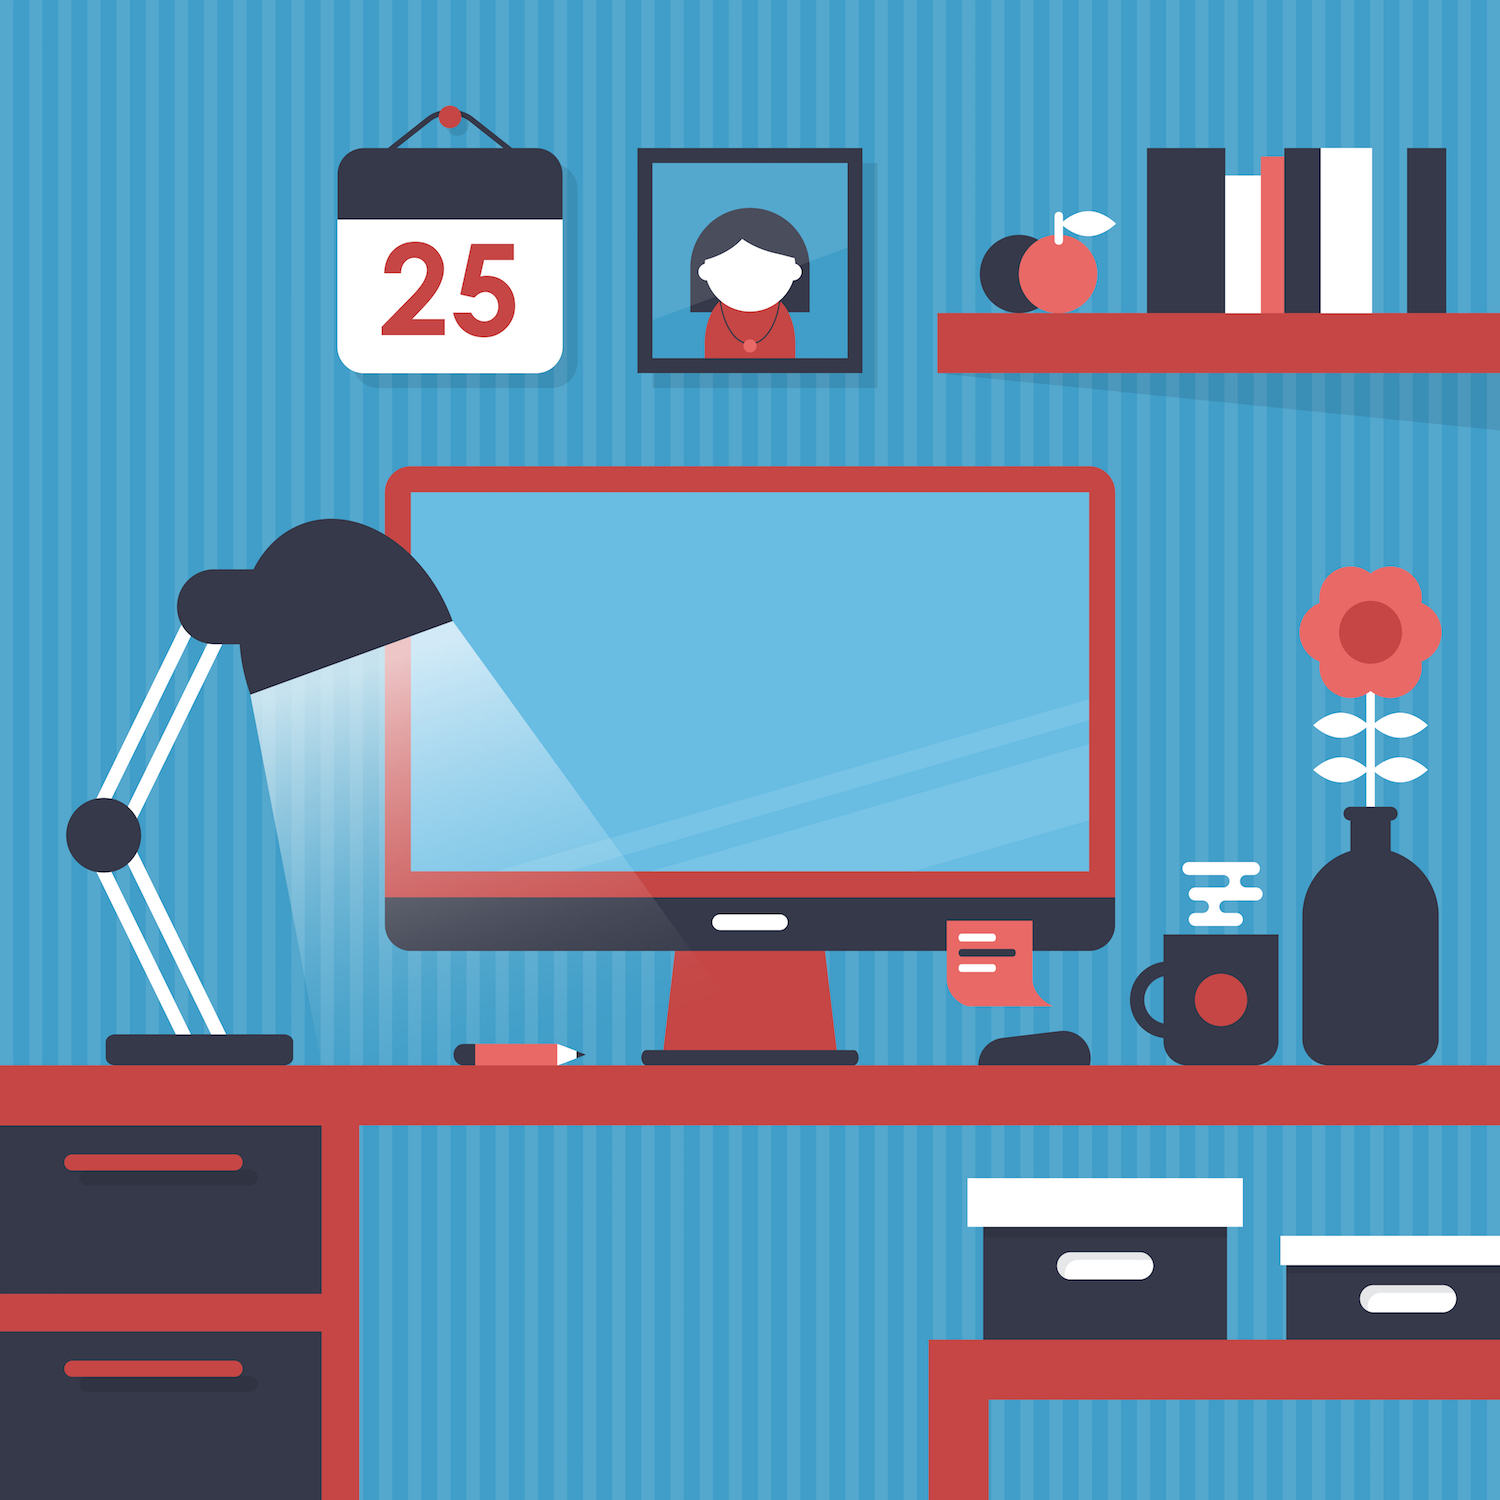 Re-imagine your work space to inspire productivity. Here's how.